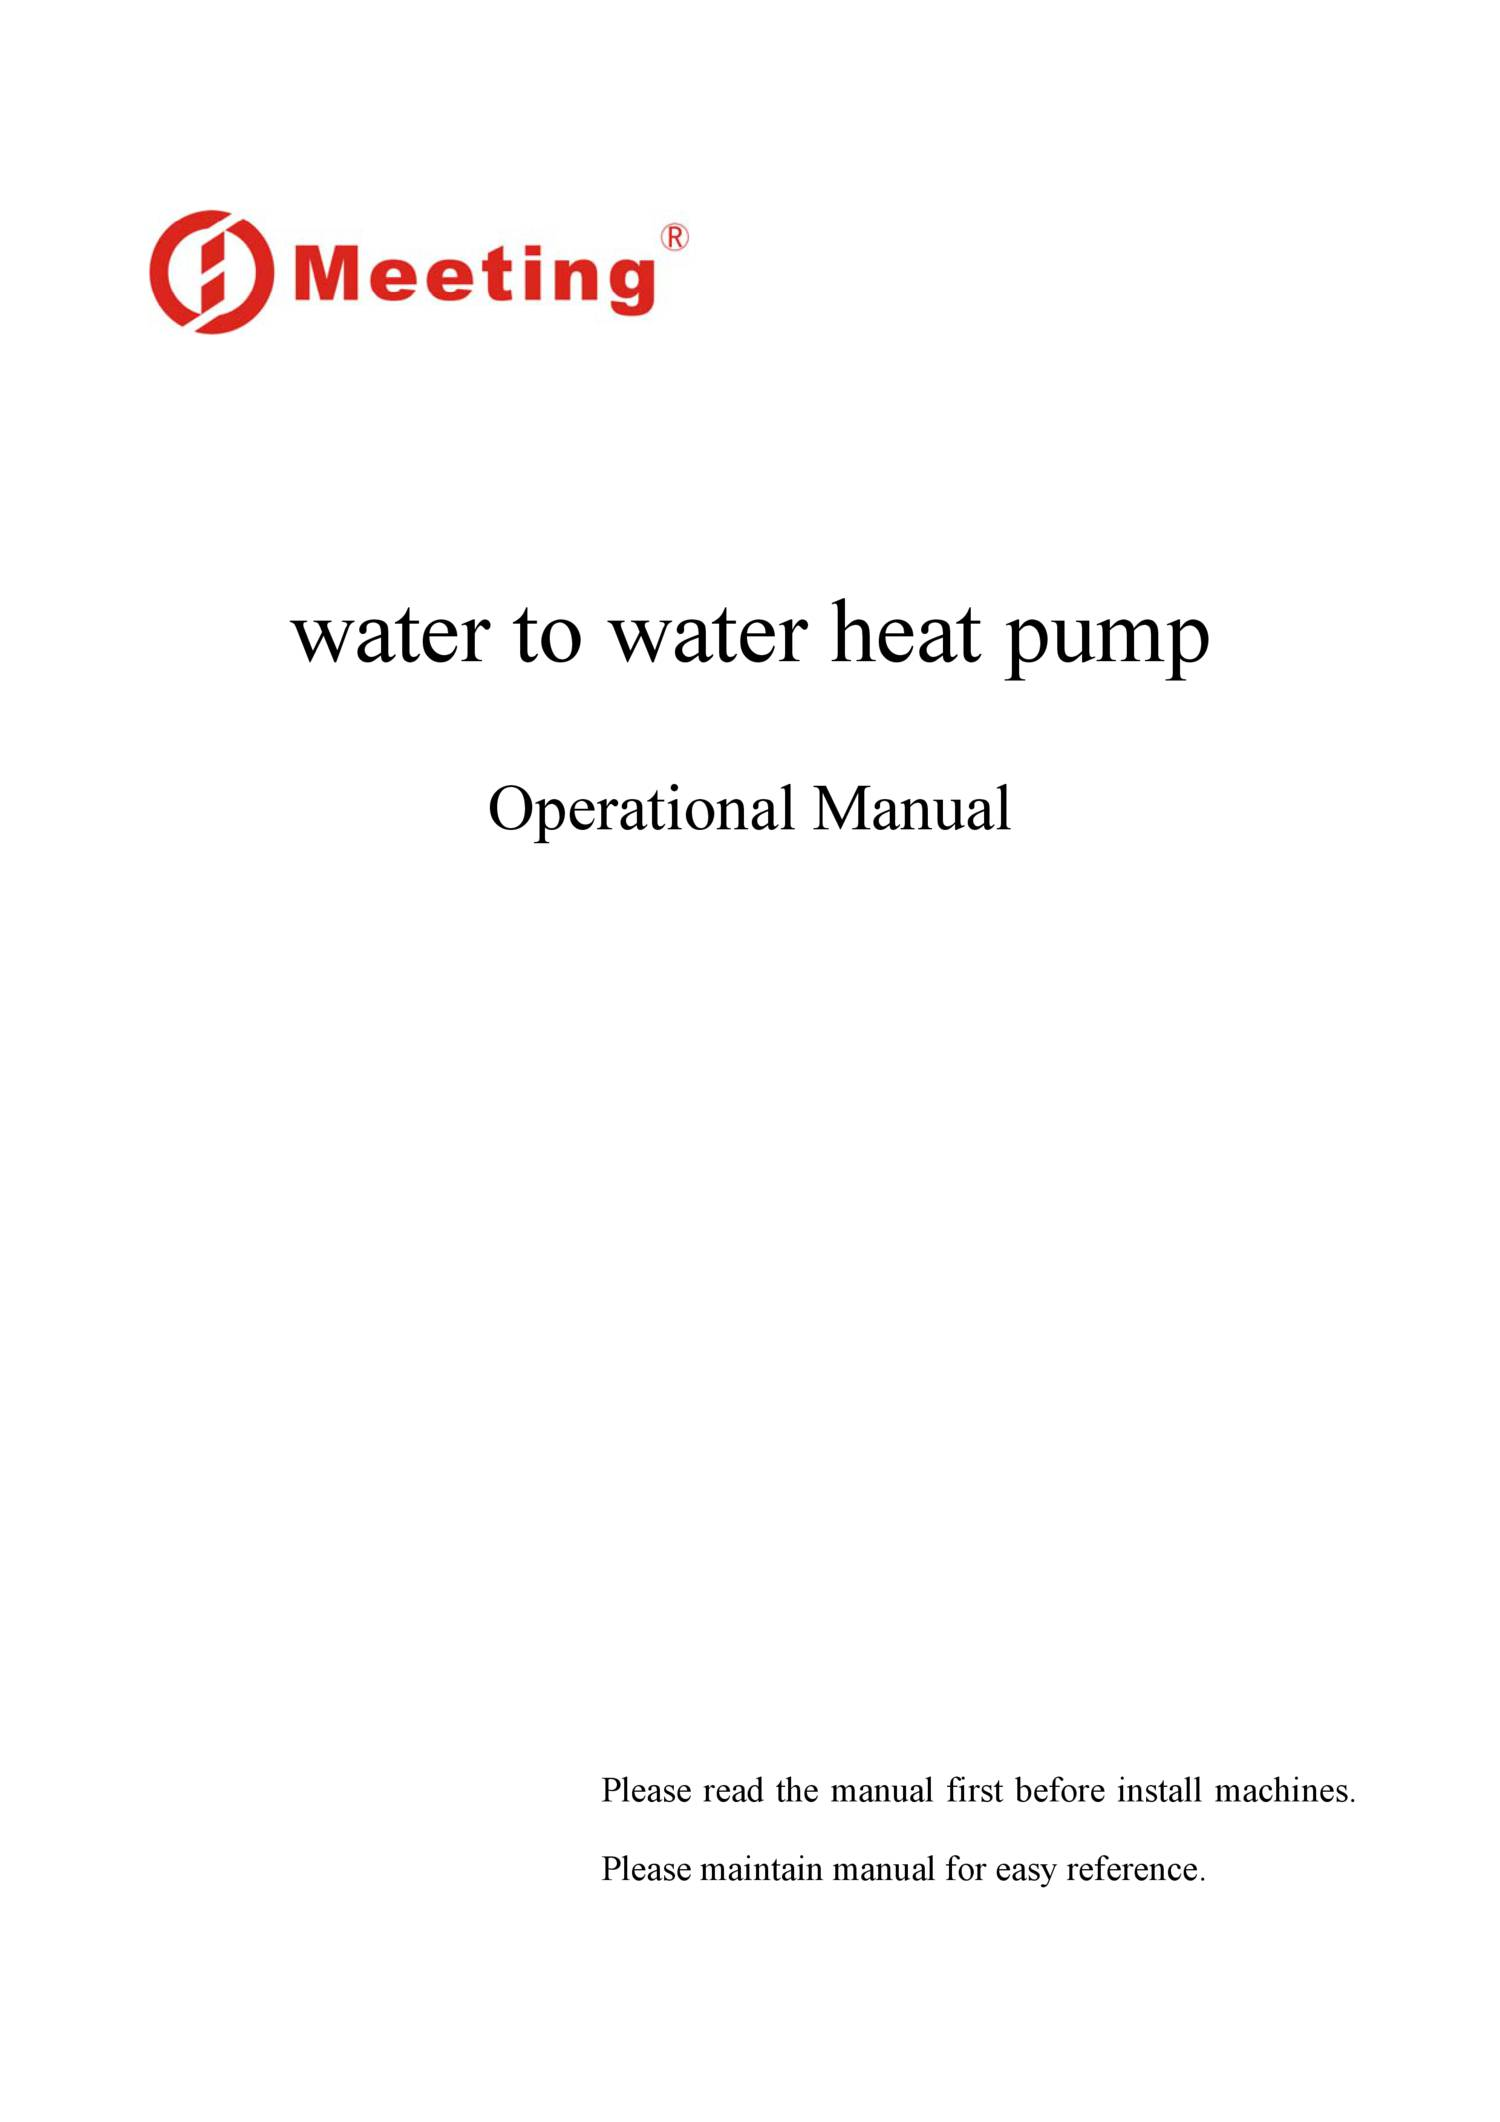 water_to_water_Meeting_English.pdf | DocDroid